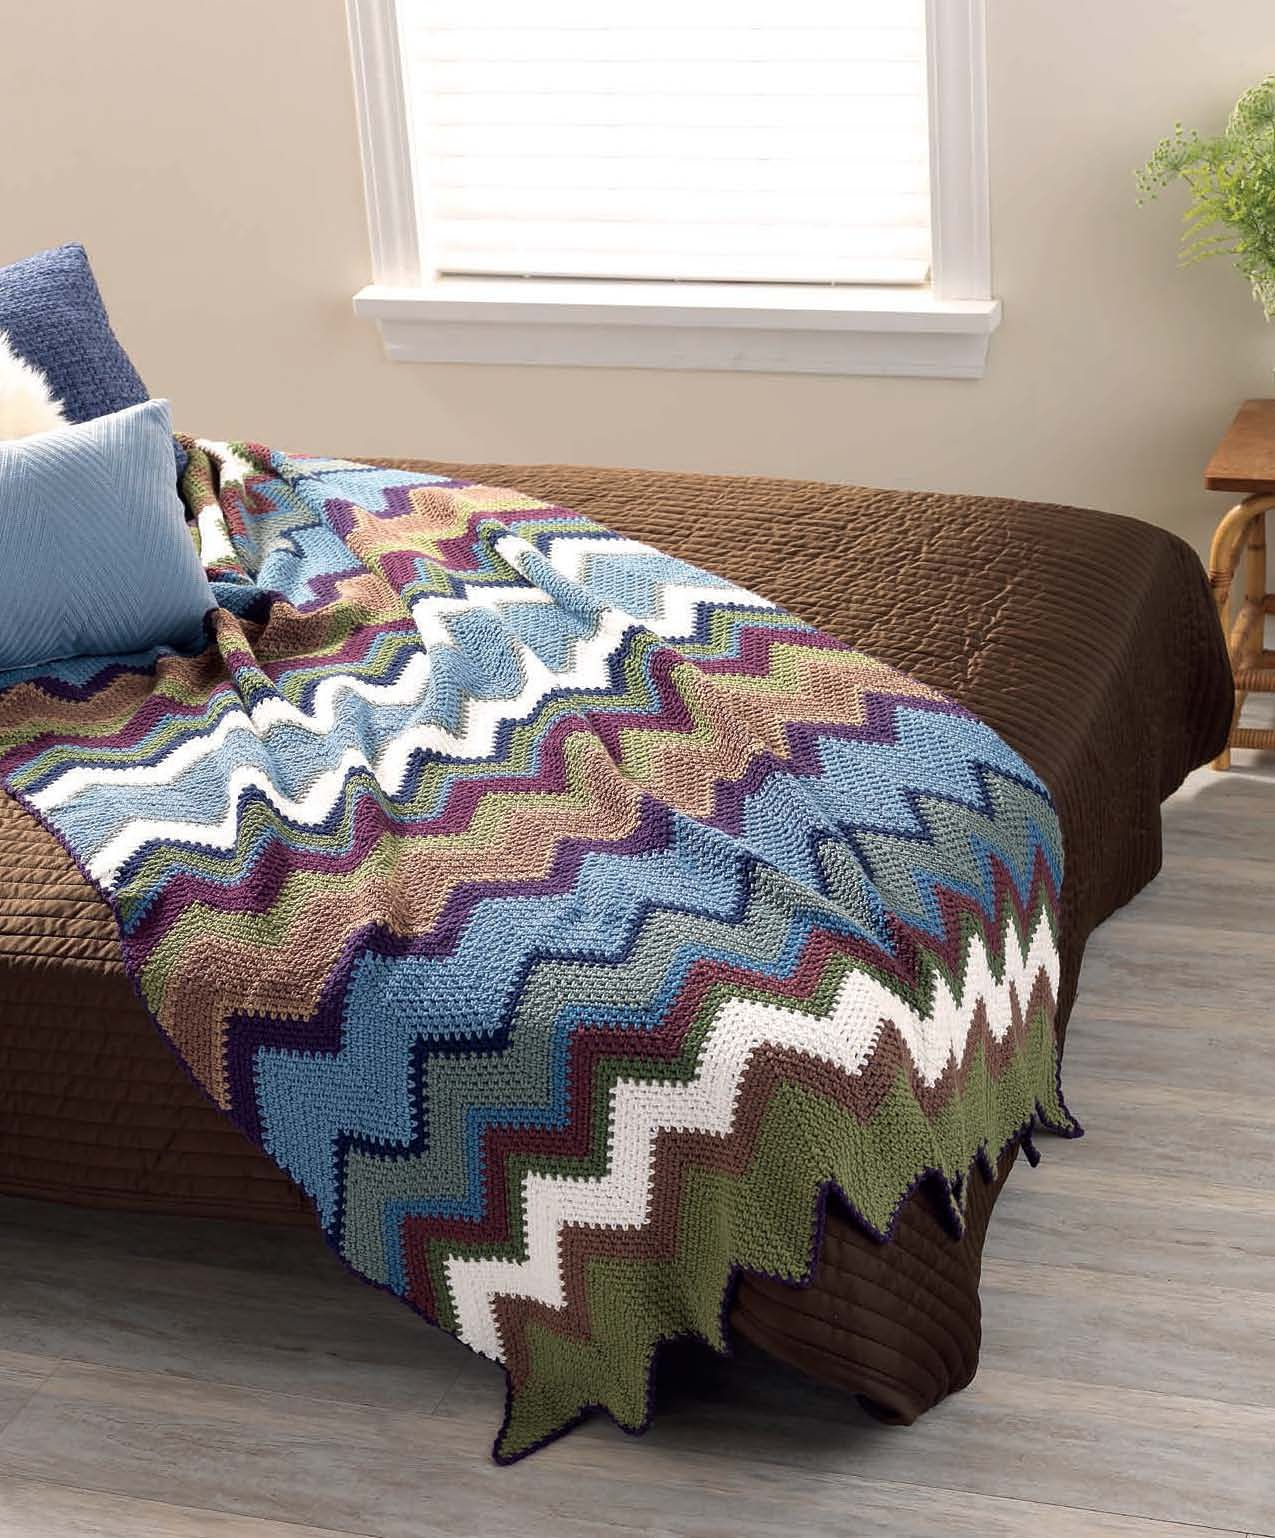 Crocheted chevron bedspread free pattern craftfoxes crochet crocheted chevron bedspread free pattern craftfoxes bankloansurffo Images